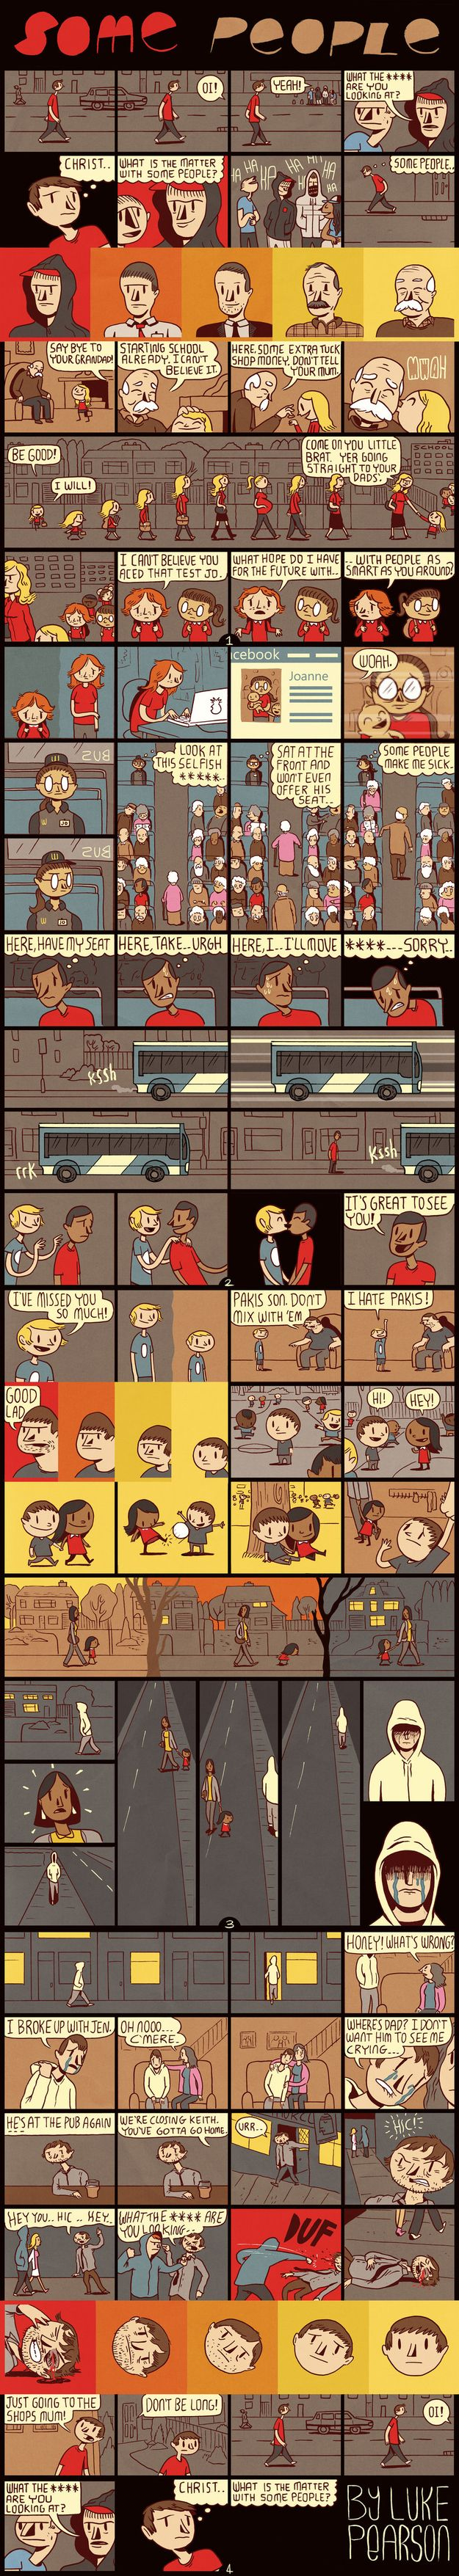 """""""Some People"""" by Luke Pearson"""